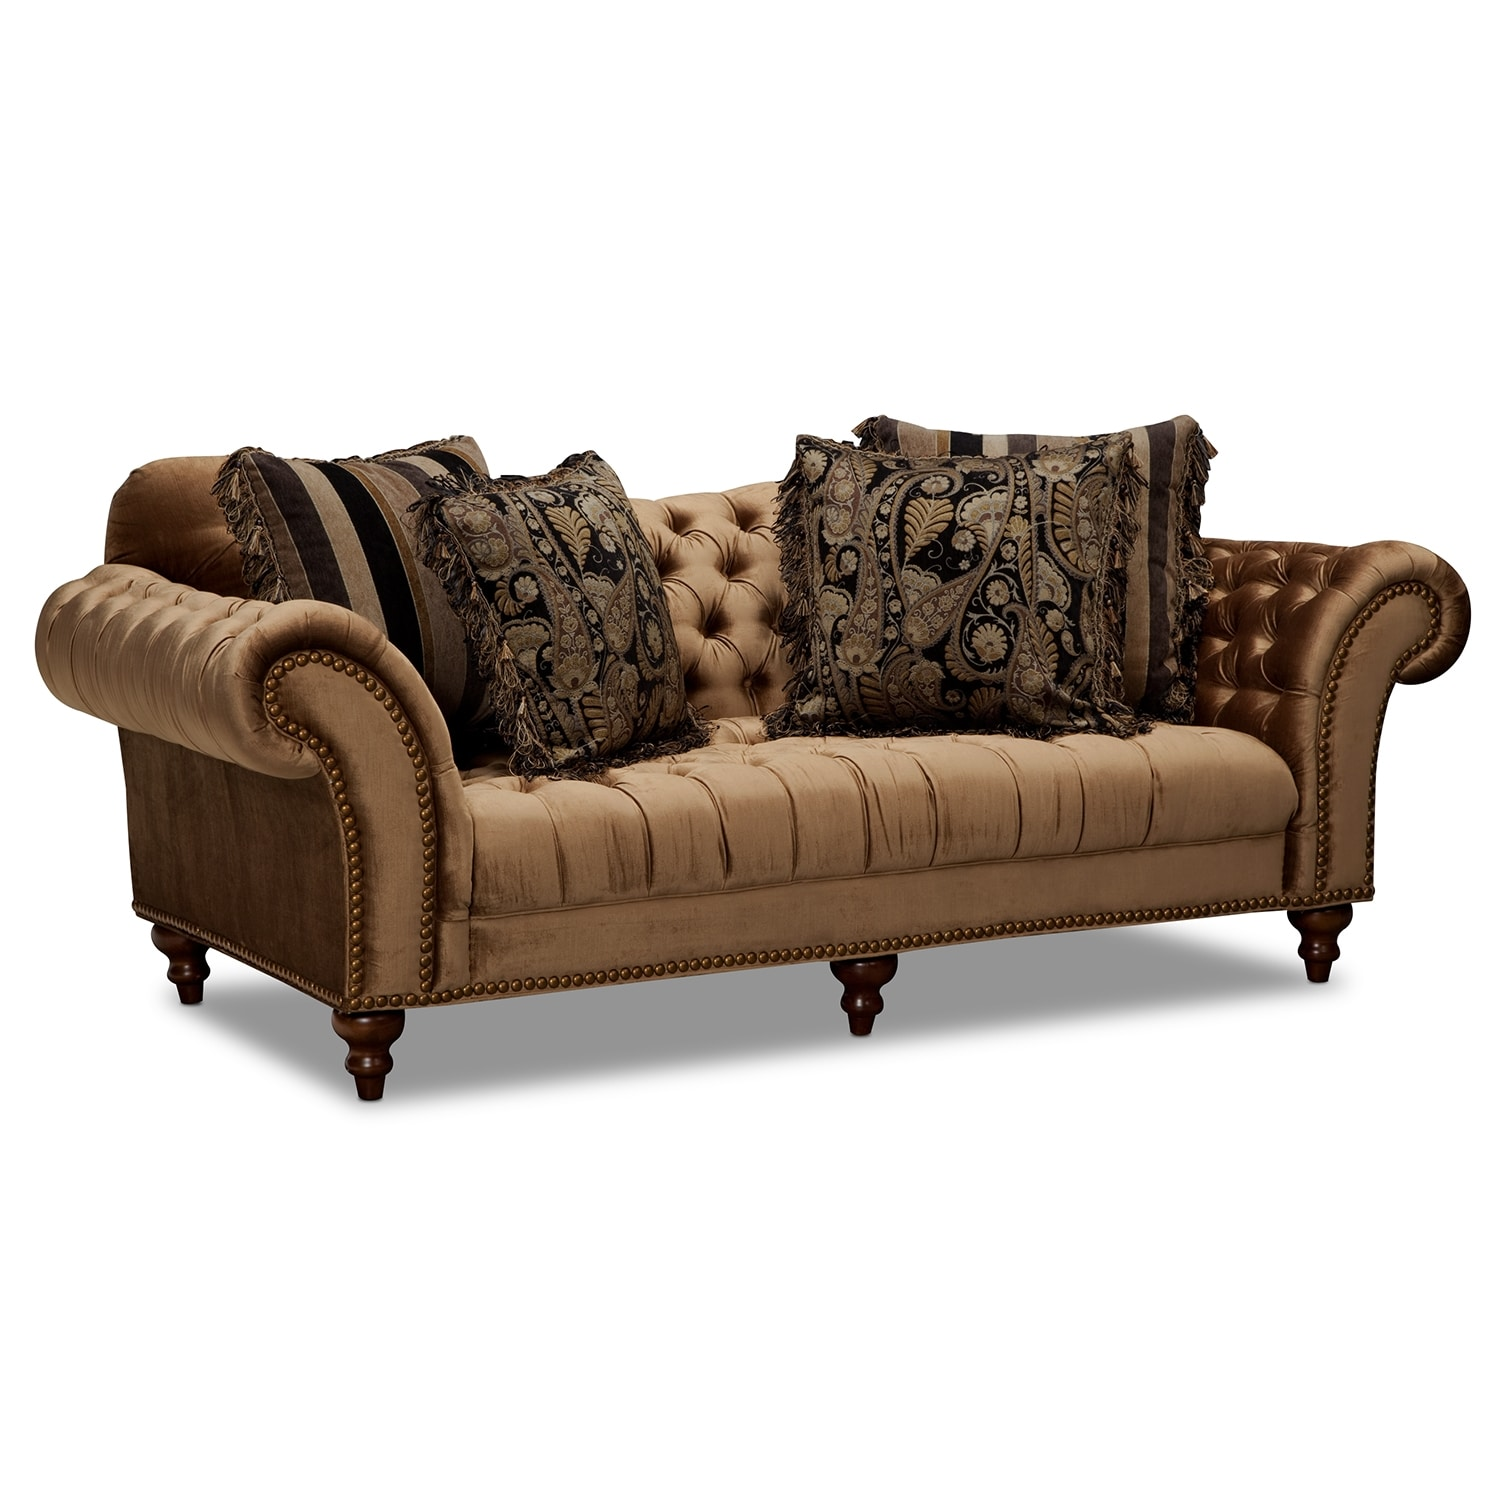 Amazing Brittney Sofa Chaise And Chair Set Bronze Value City Furniture